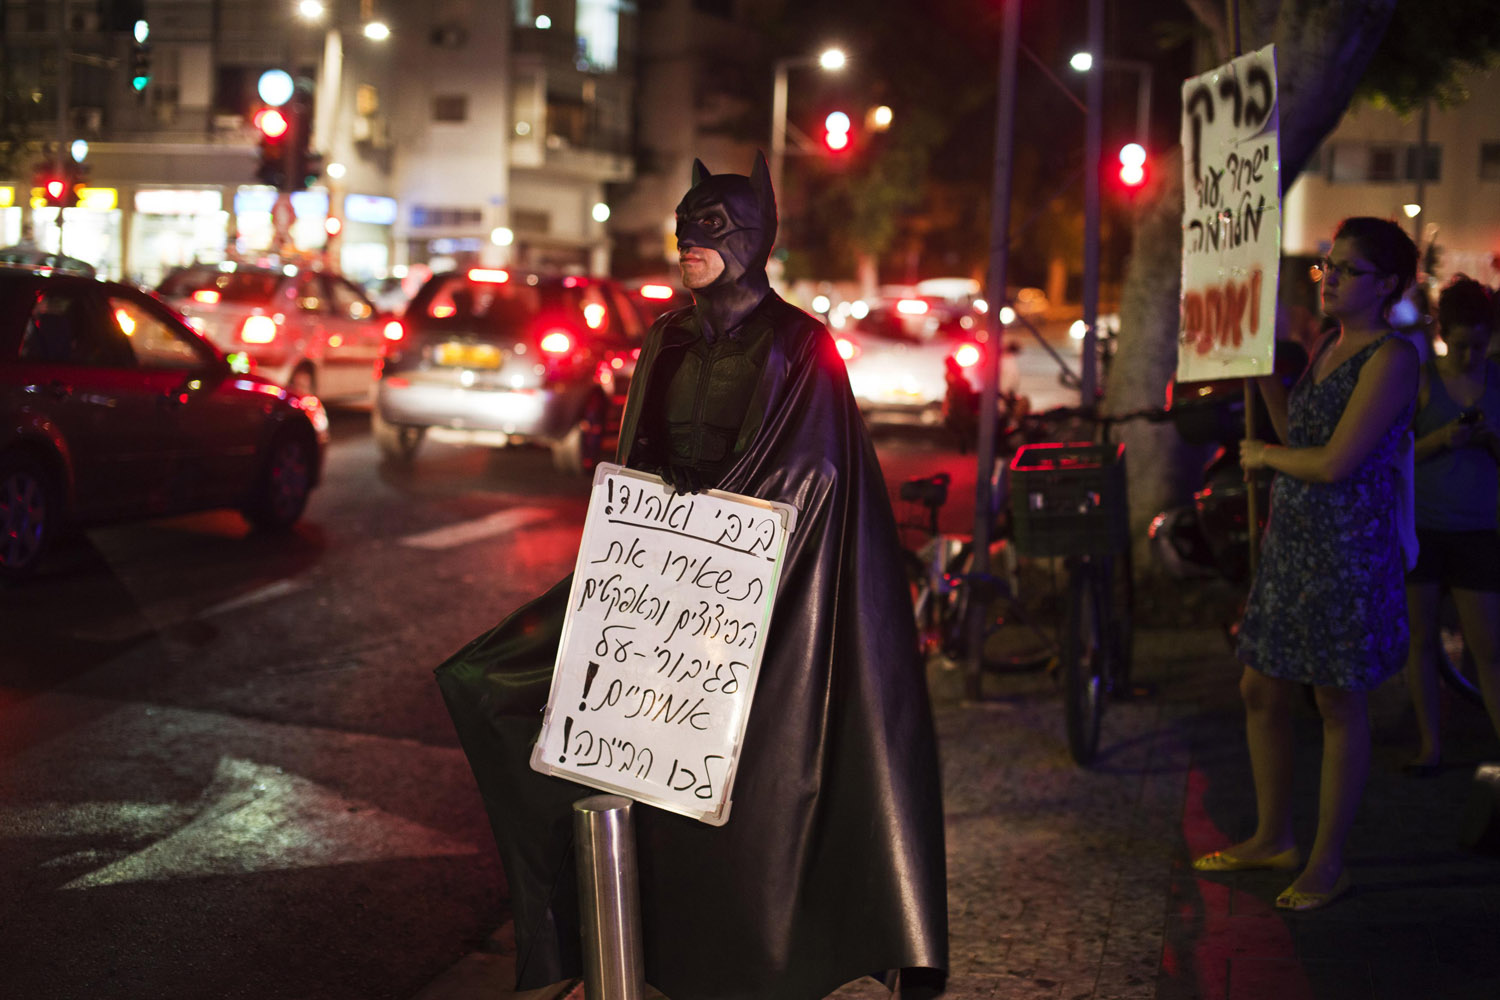 Aug. 12, 2012. An Israeli in a Batman costume holds a placard during a protest against war with Iran, outside the home of Israel's Defence Minister Ehud Barak in Tel Aviv.